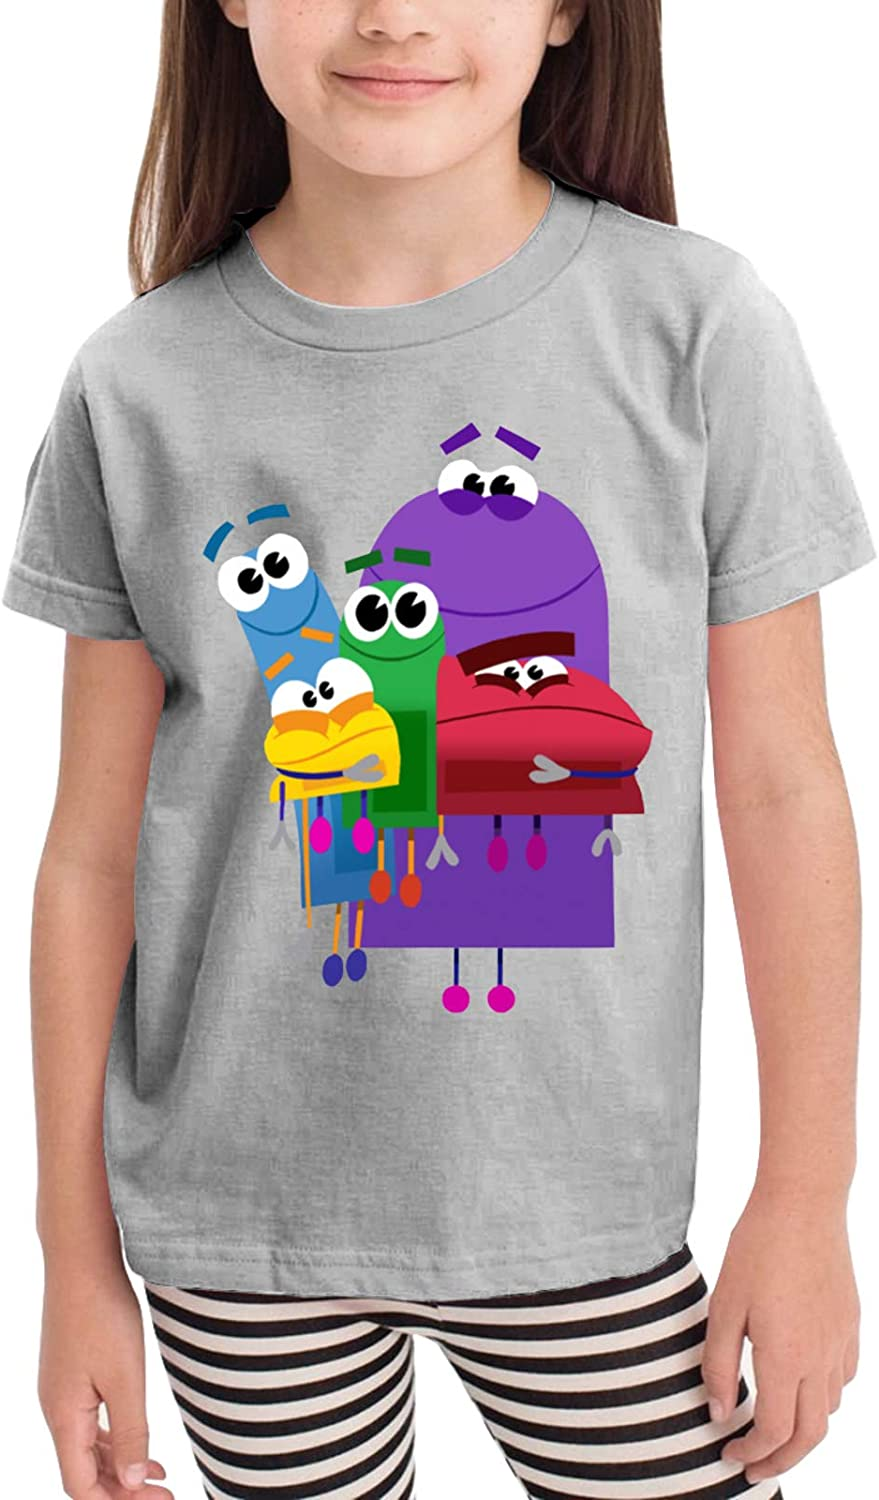 2-6 Years Old Kid Boys/Girls Ask The StoryBots Interesting Graphic T-Shirts,Inspired Athletic Tee Top for Summer,Spring,Fall